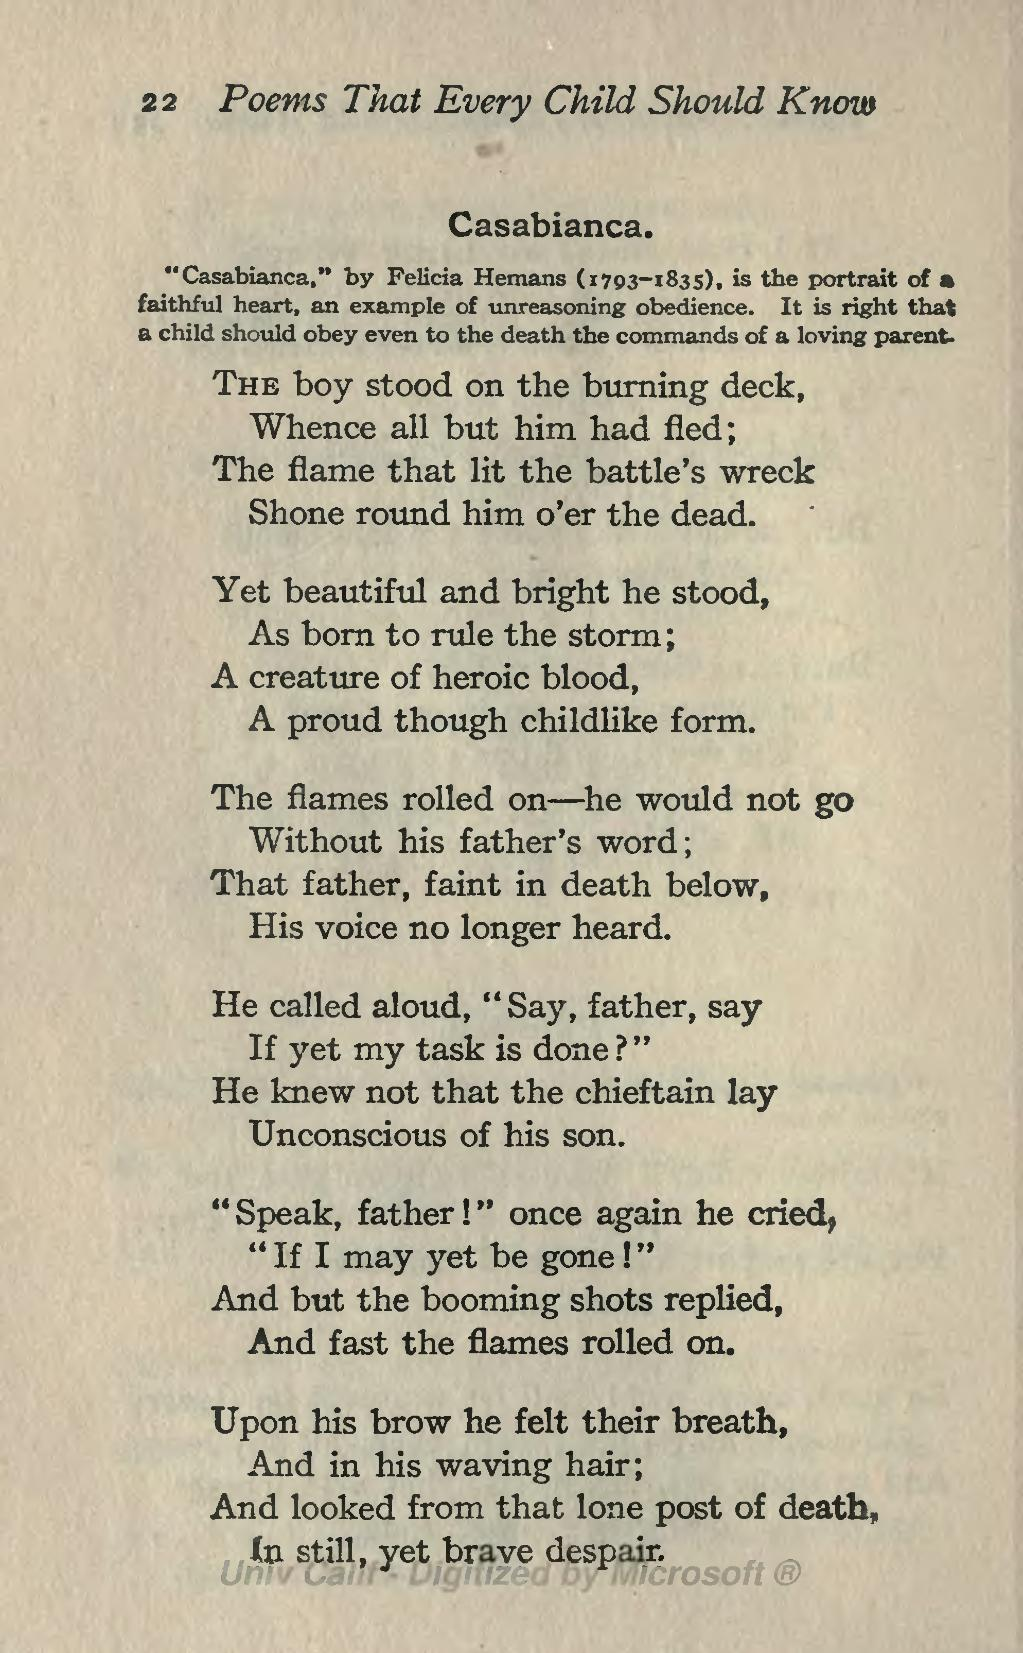 When Child Is Killed By Parent Word But >> Page Poems That Every Child Should Know Ed Burt 1904 Djvu 60